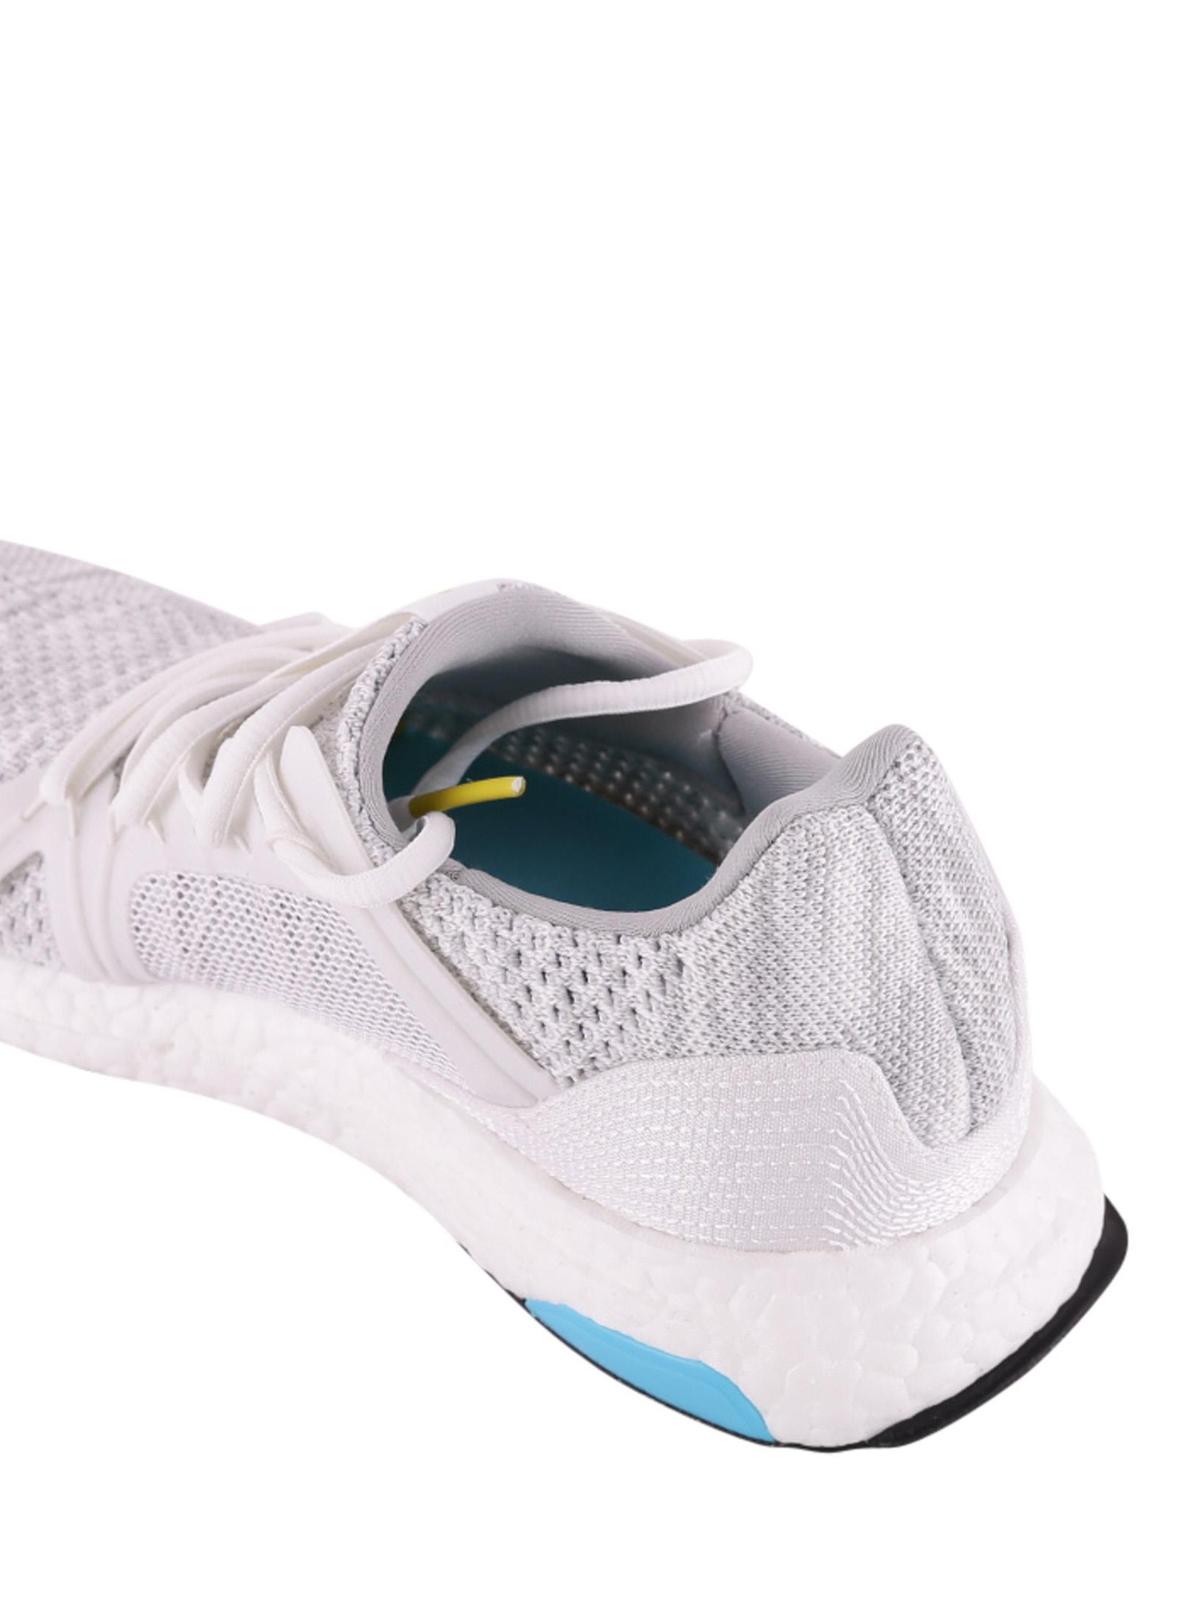 6233310921f5f Ultraboost Parley running sneakers shop online  ADIDAS BY STELLA MCCARTNEY